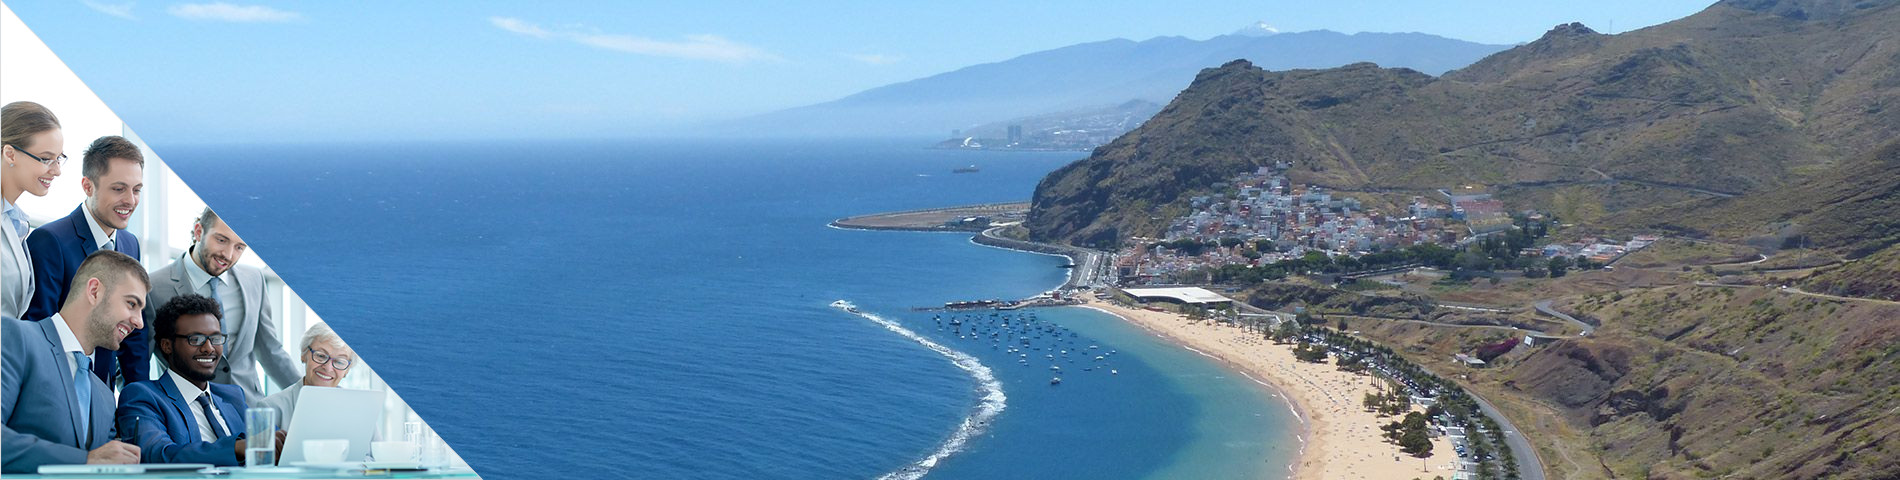 Tenerife - Business Group